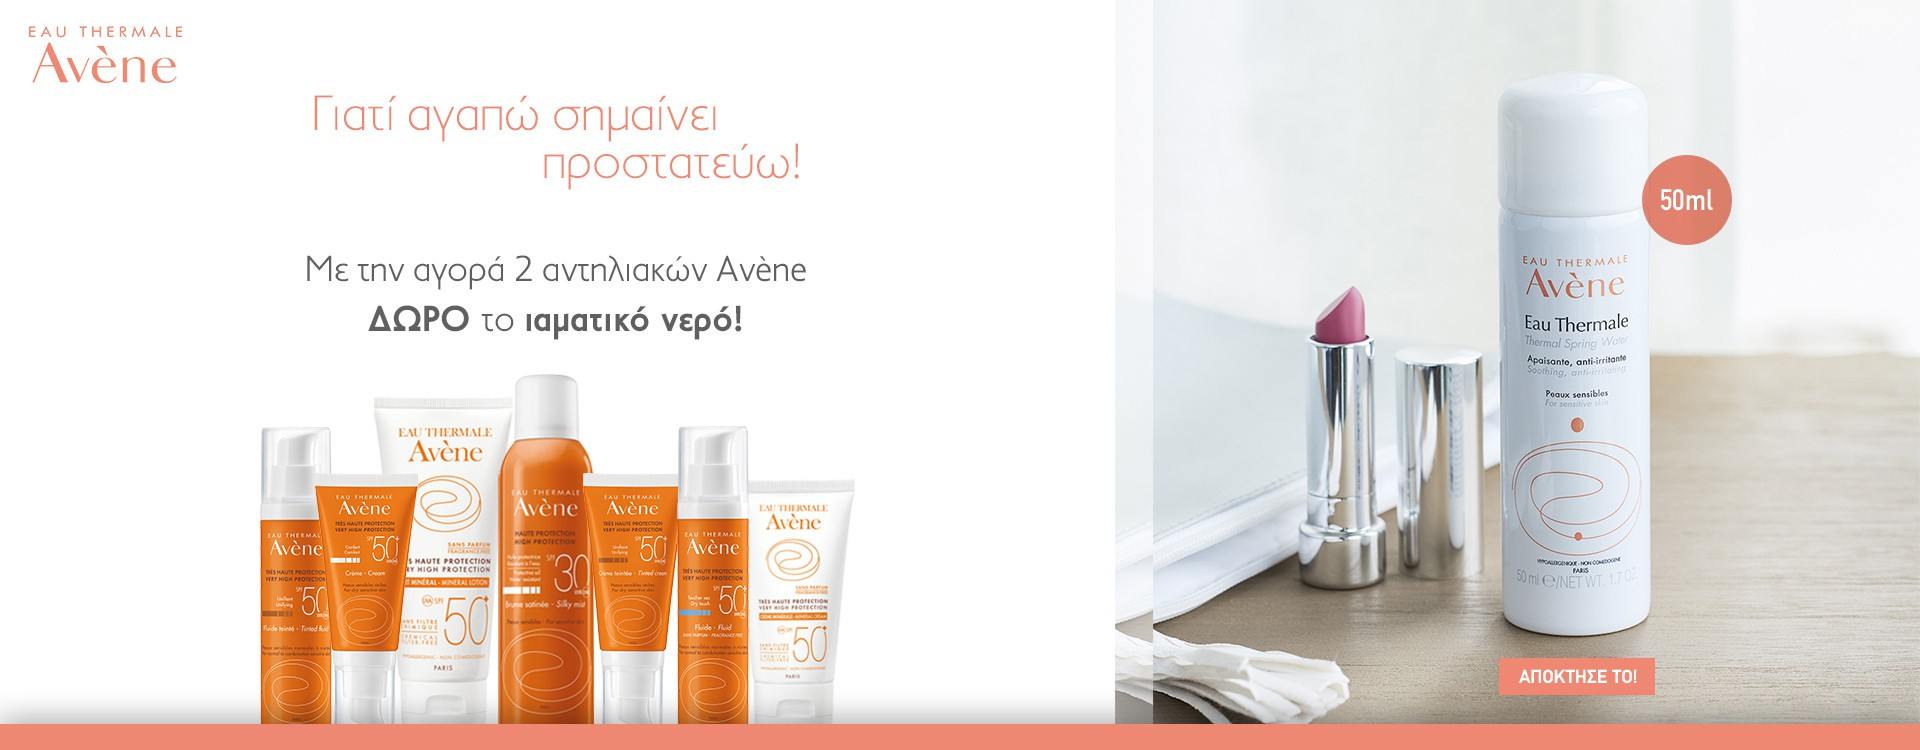 Slider avene 50ml jul18 1920x750